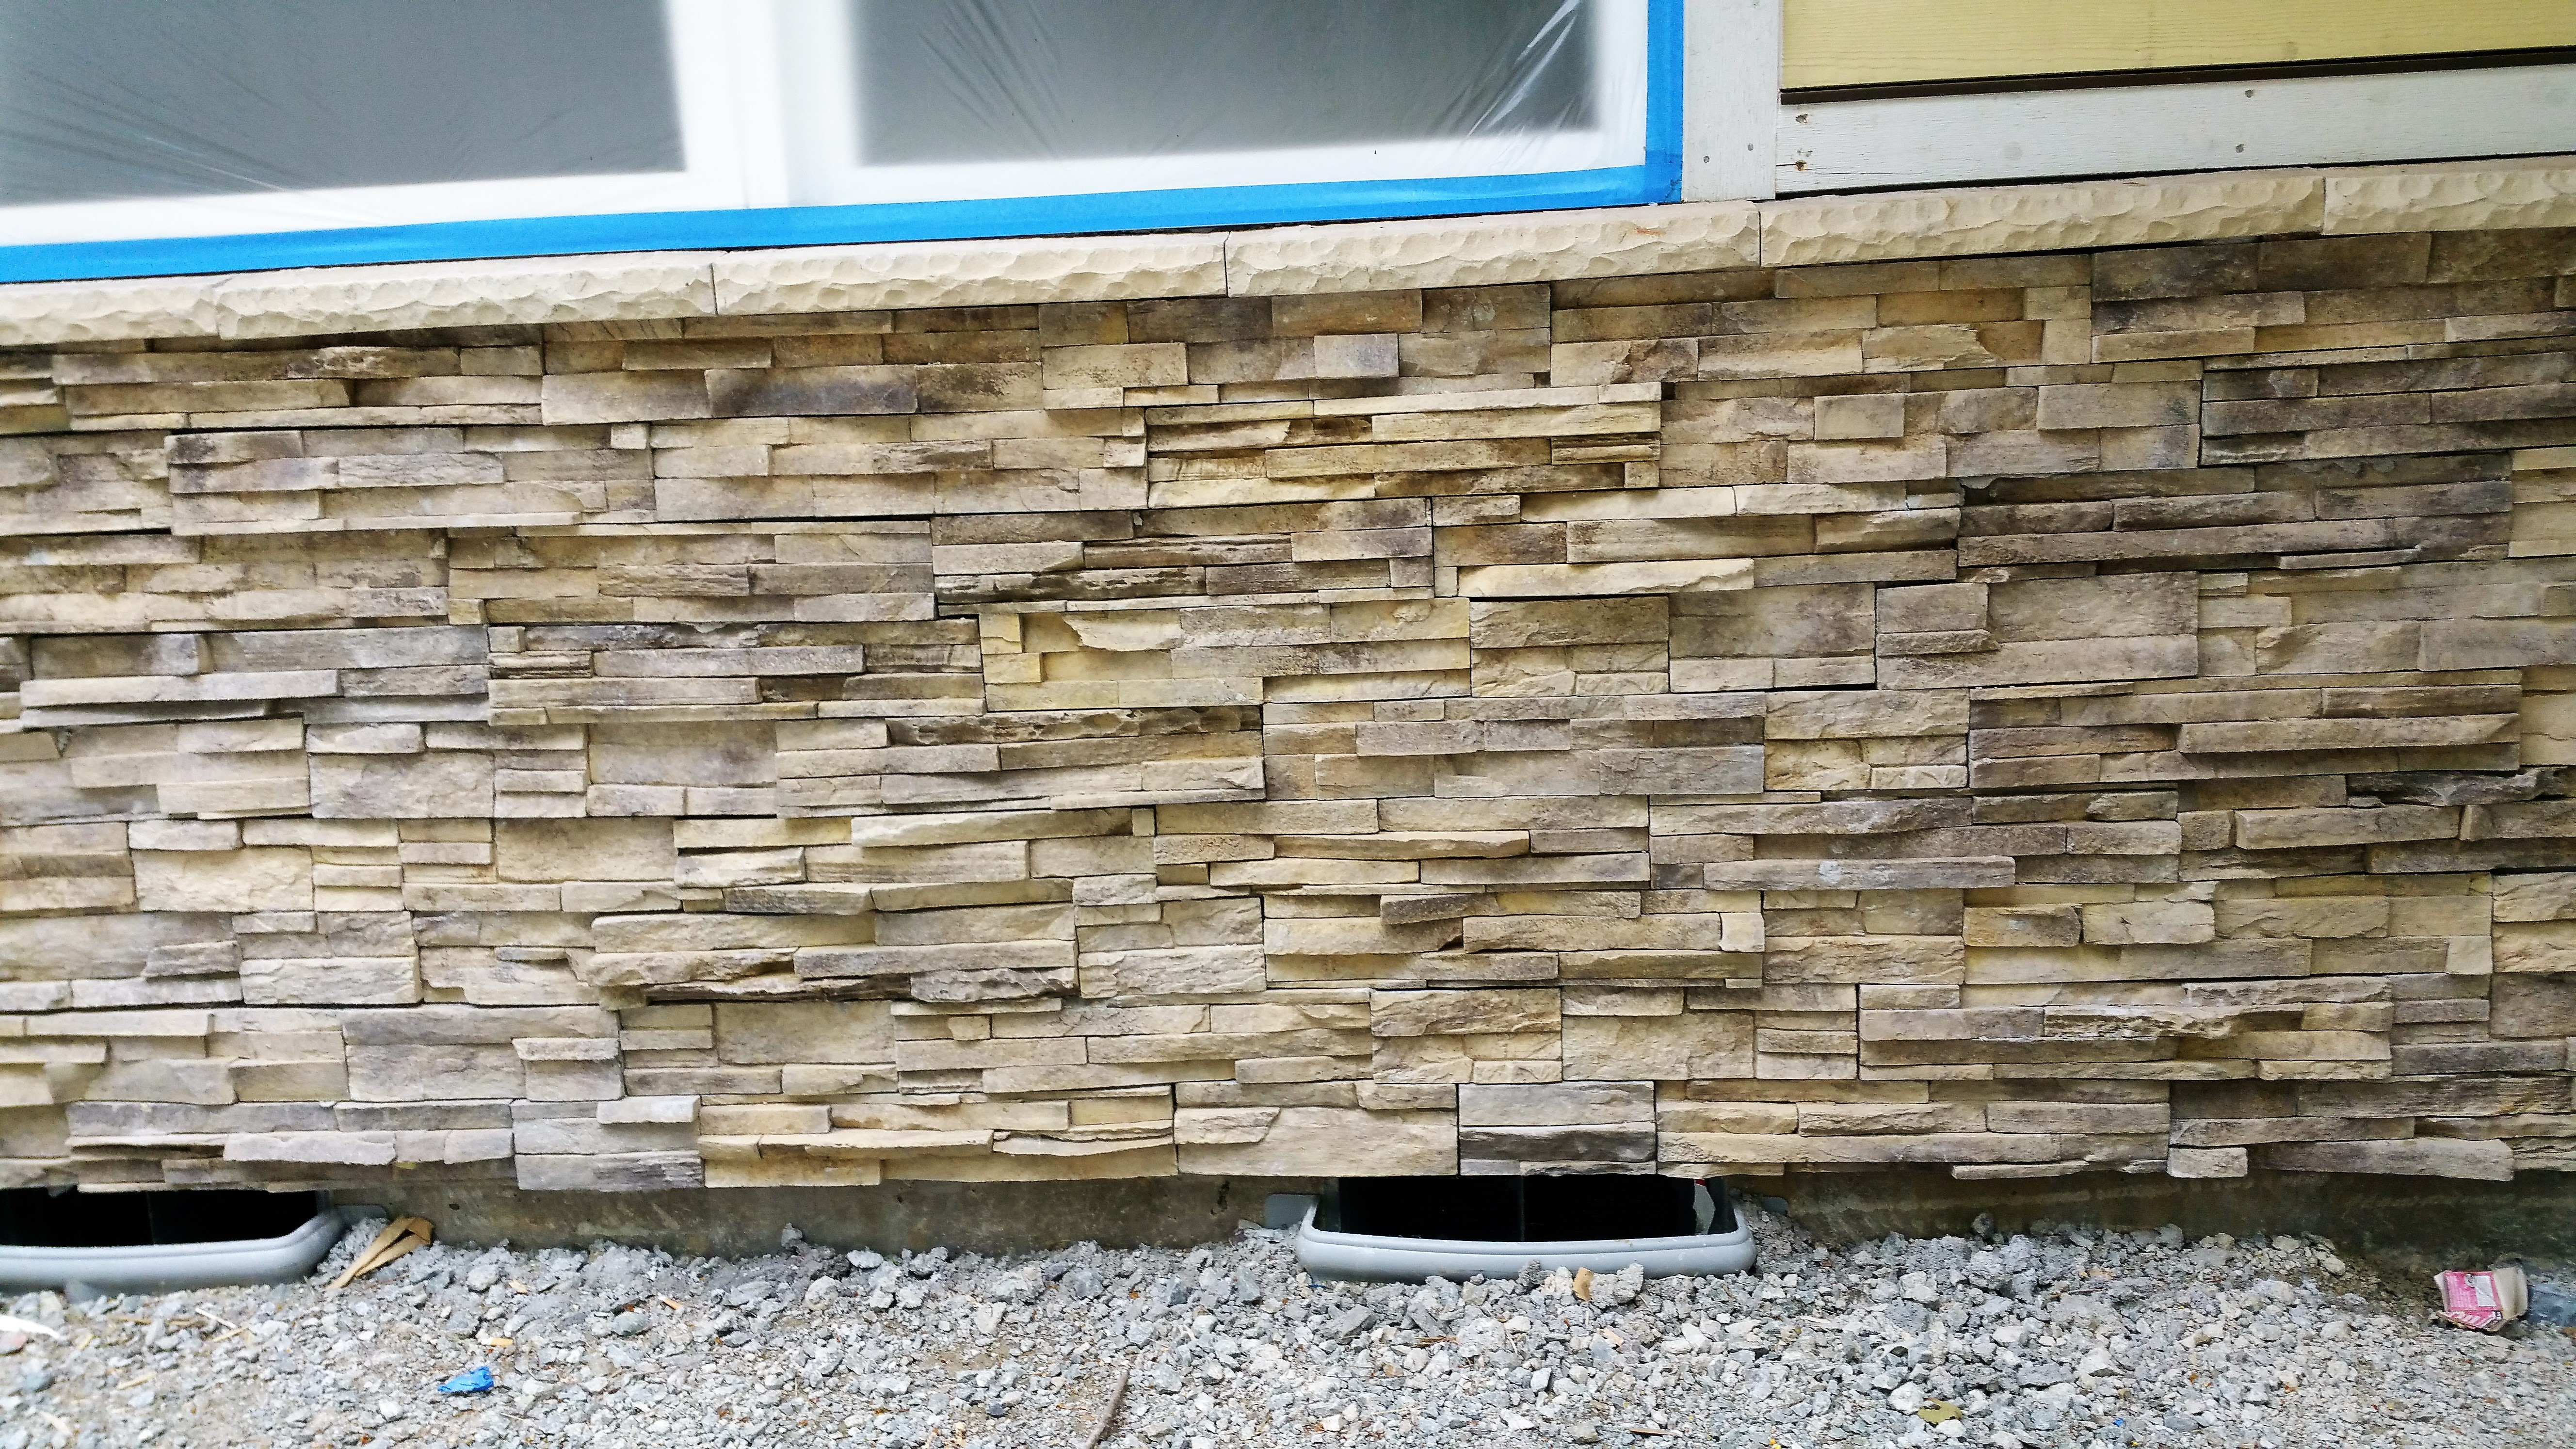 superior stone manufacturing a manufacturer of quality cultured stone stone veneer and. Black Bedroom Furniture Sets. Home Design Ideas